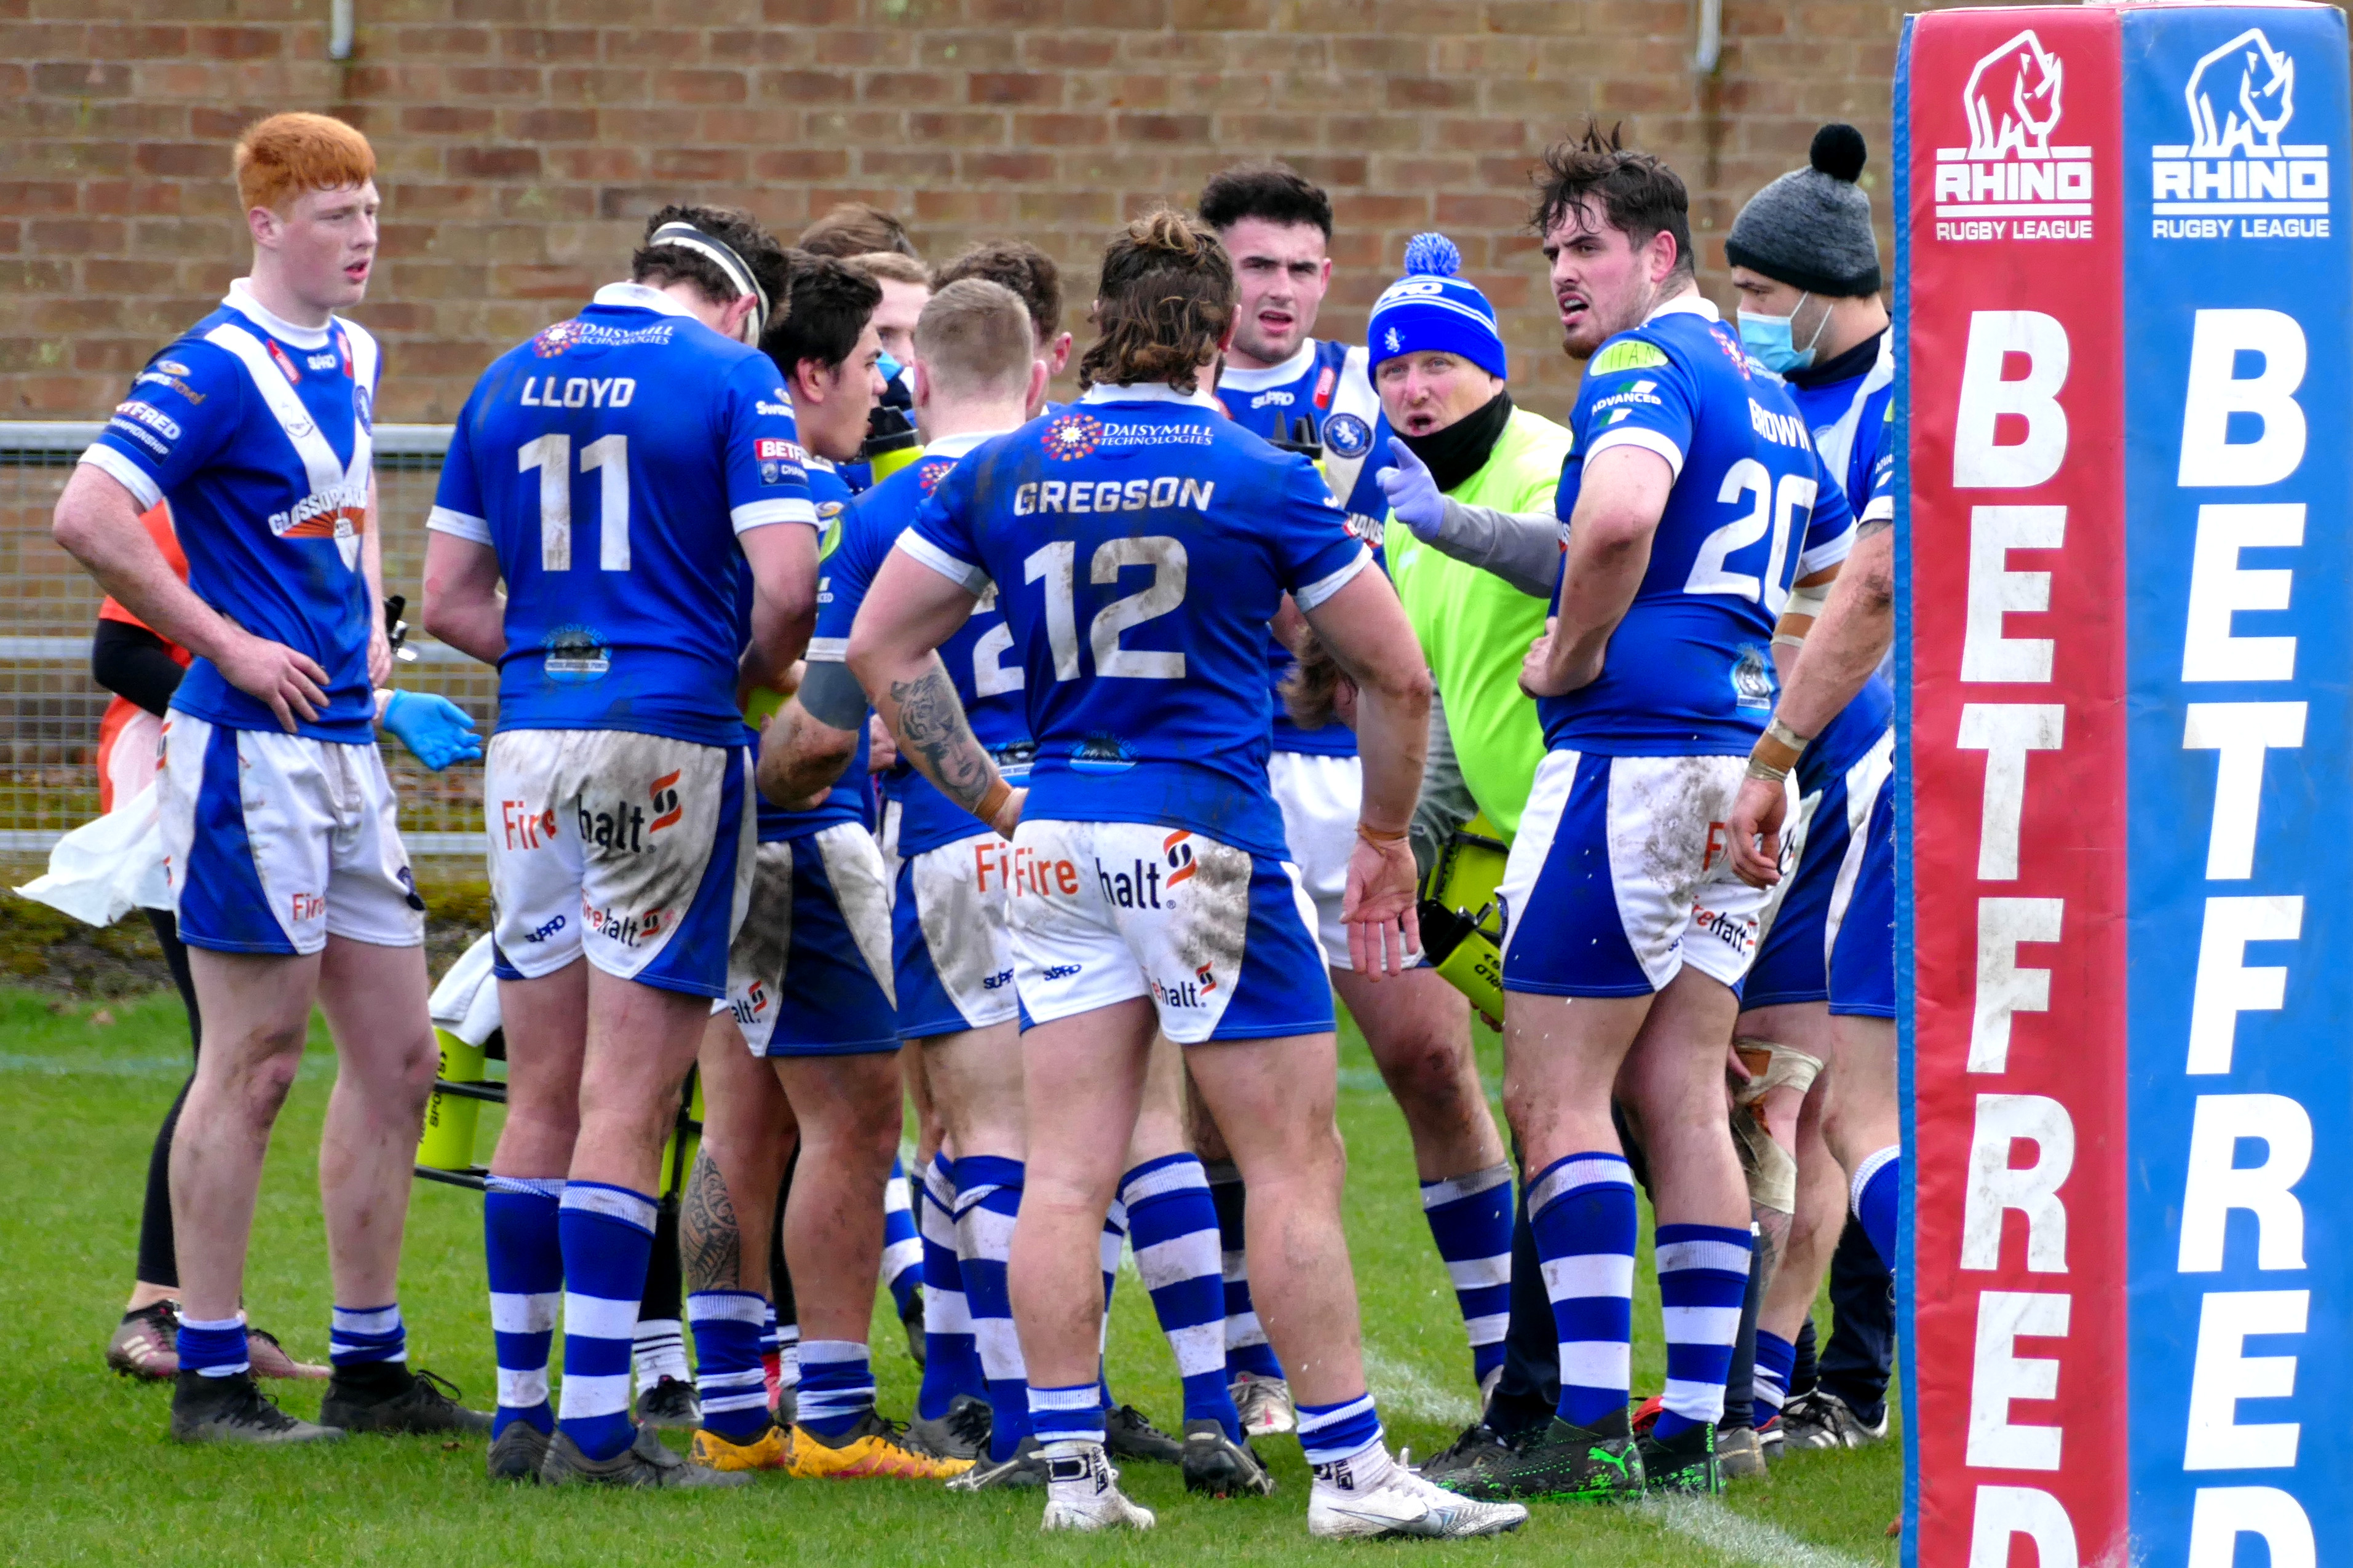 Swinton players gather after Ben Heaton's late try